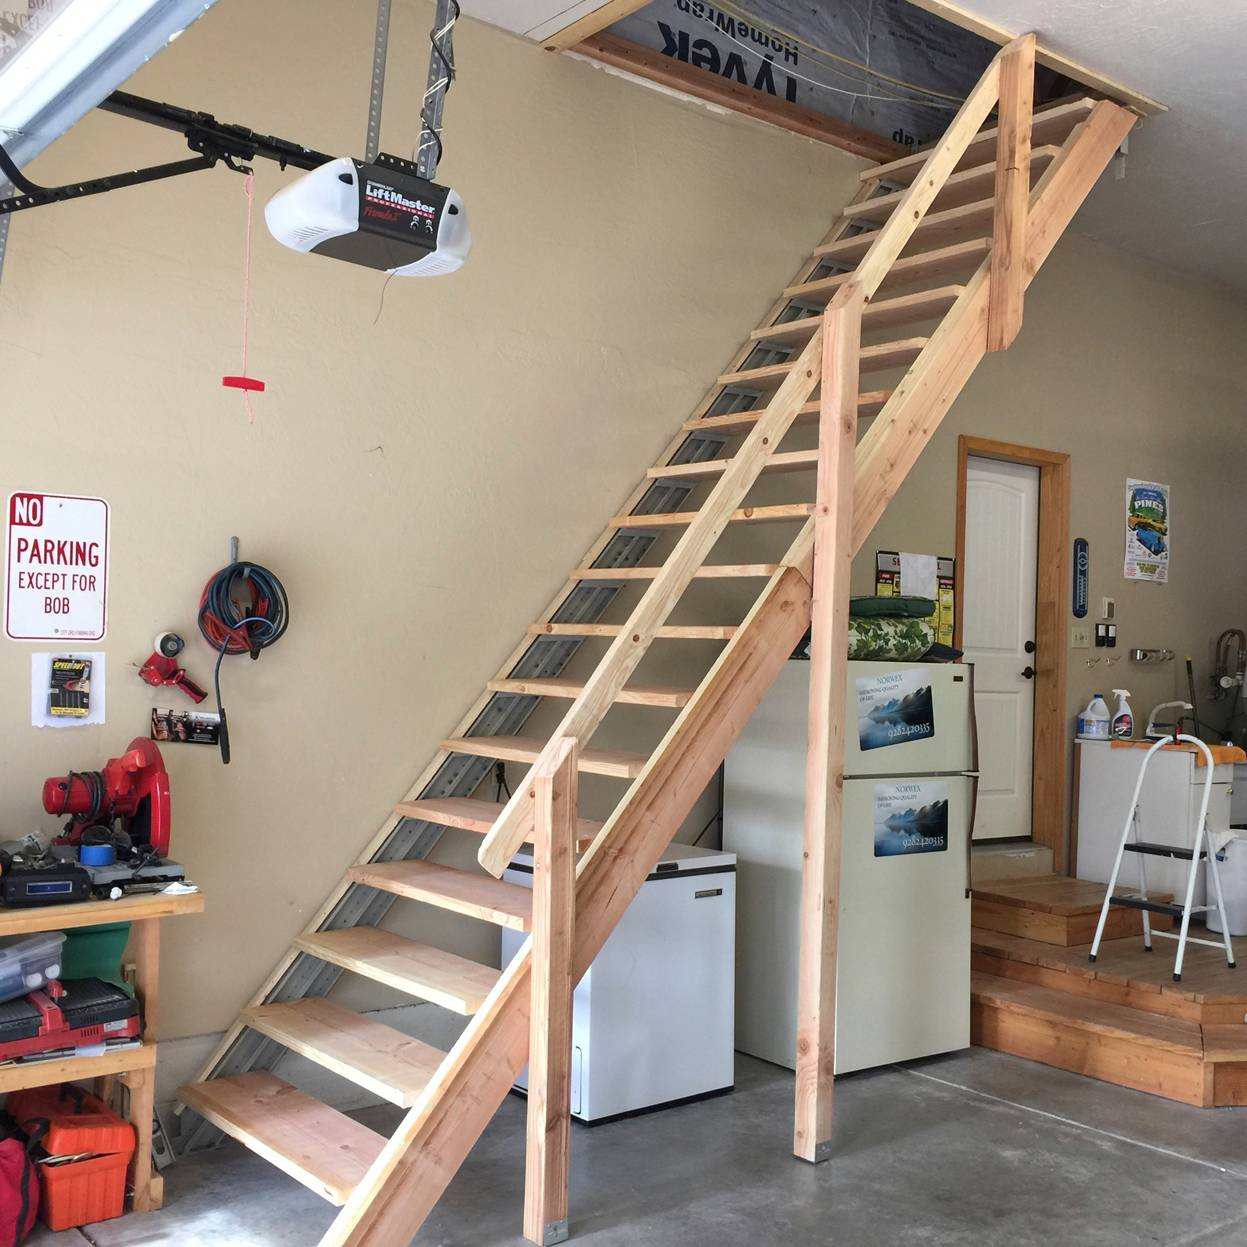 Sliding Attic Stairs Rail New Folding Attic Stairs With Handrail throughout measurements 1247 X 1247 & Pull Down Attic Stairs With Railing u2022 Attic Ideas